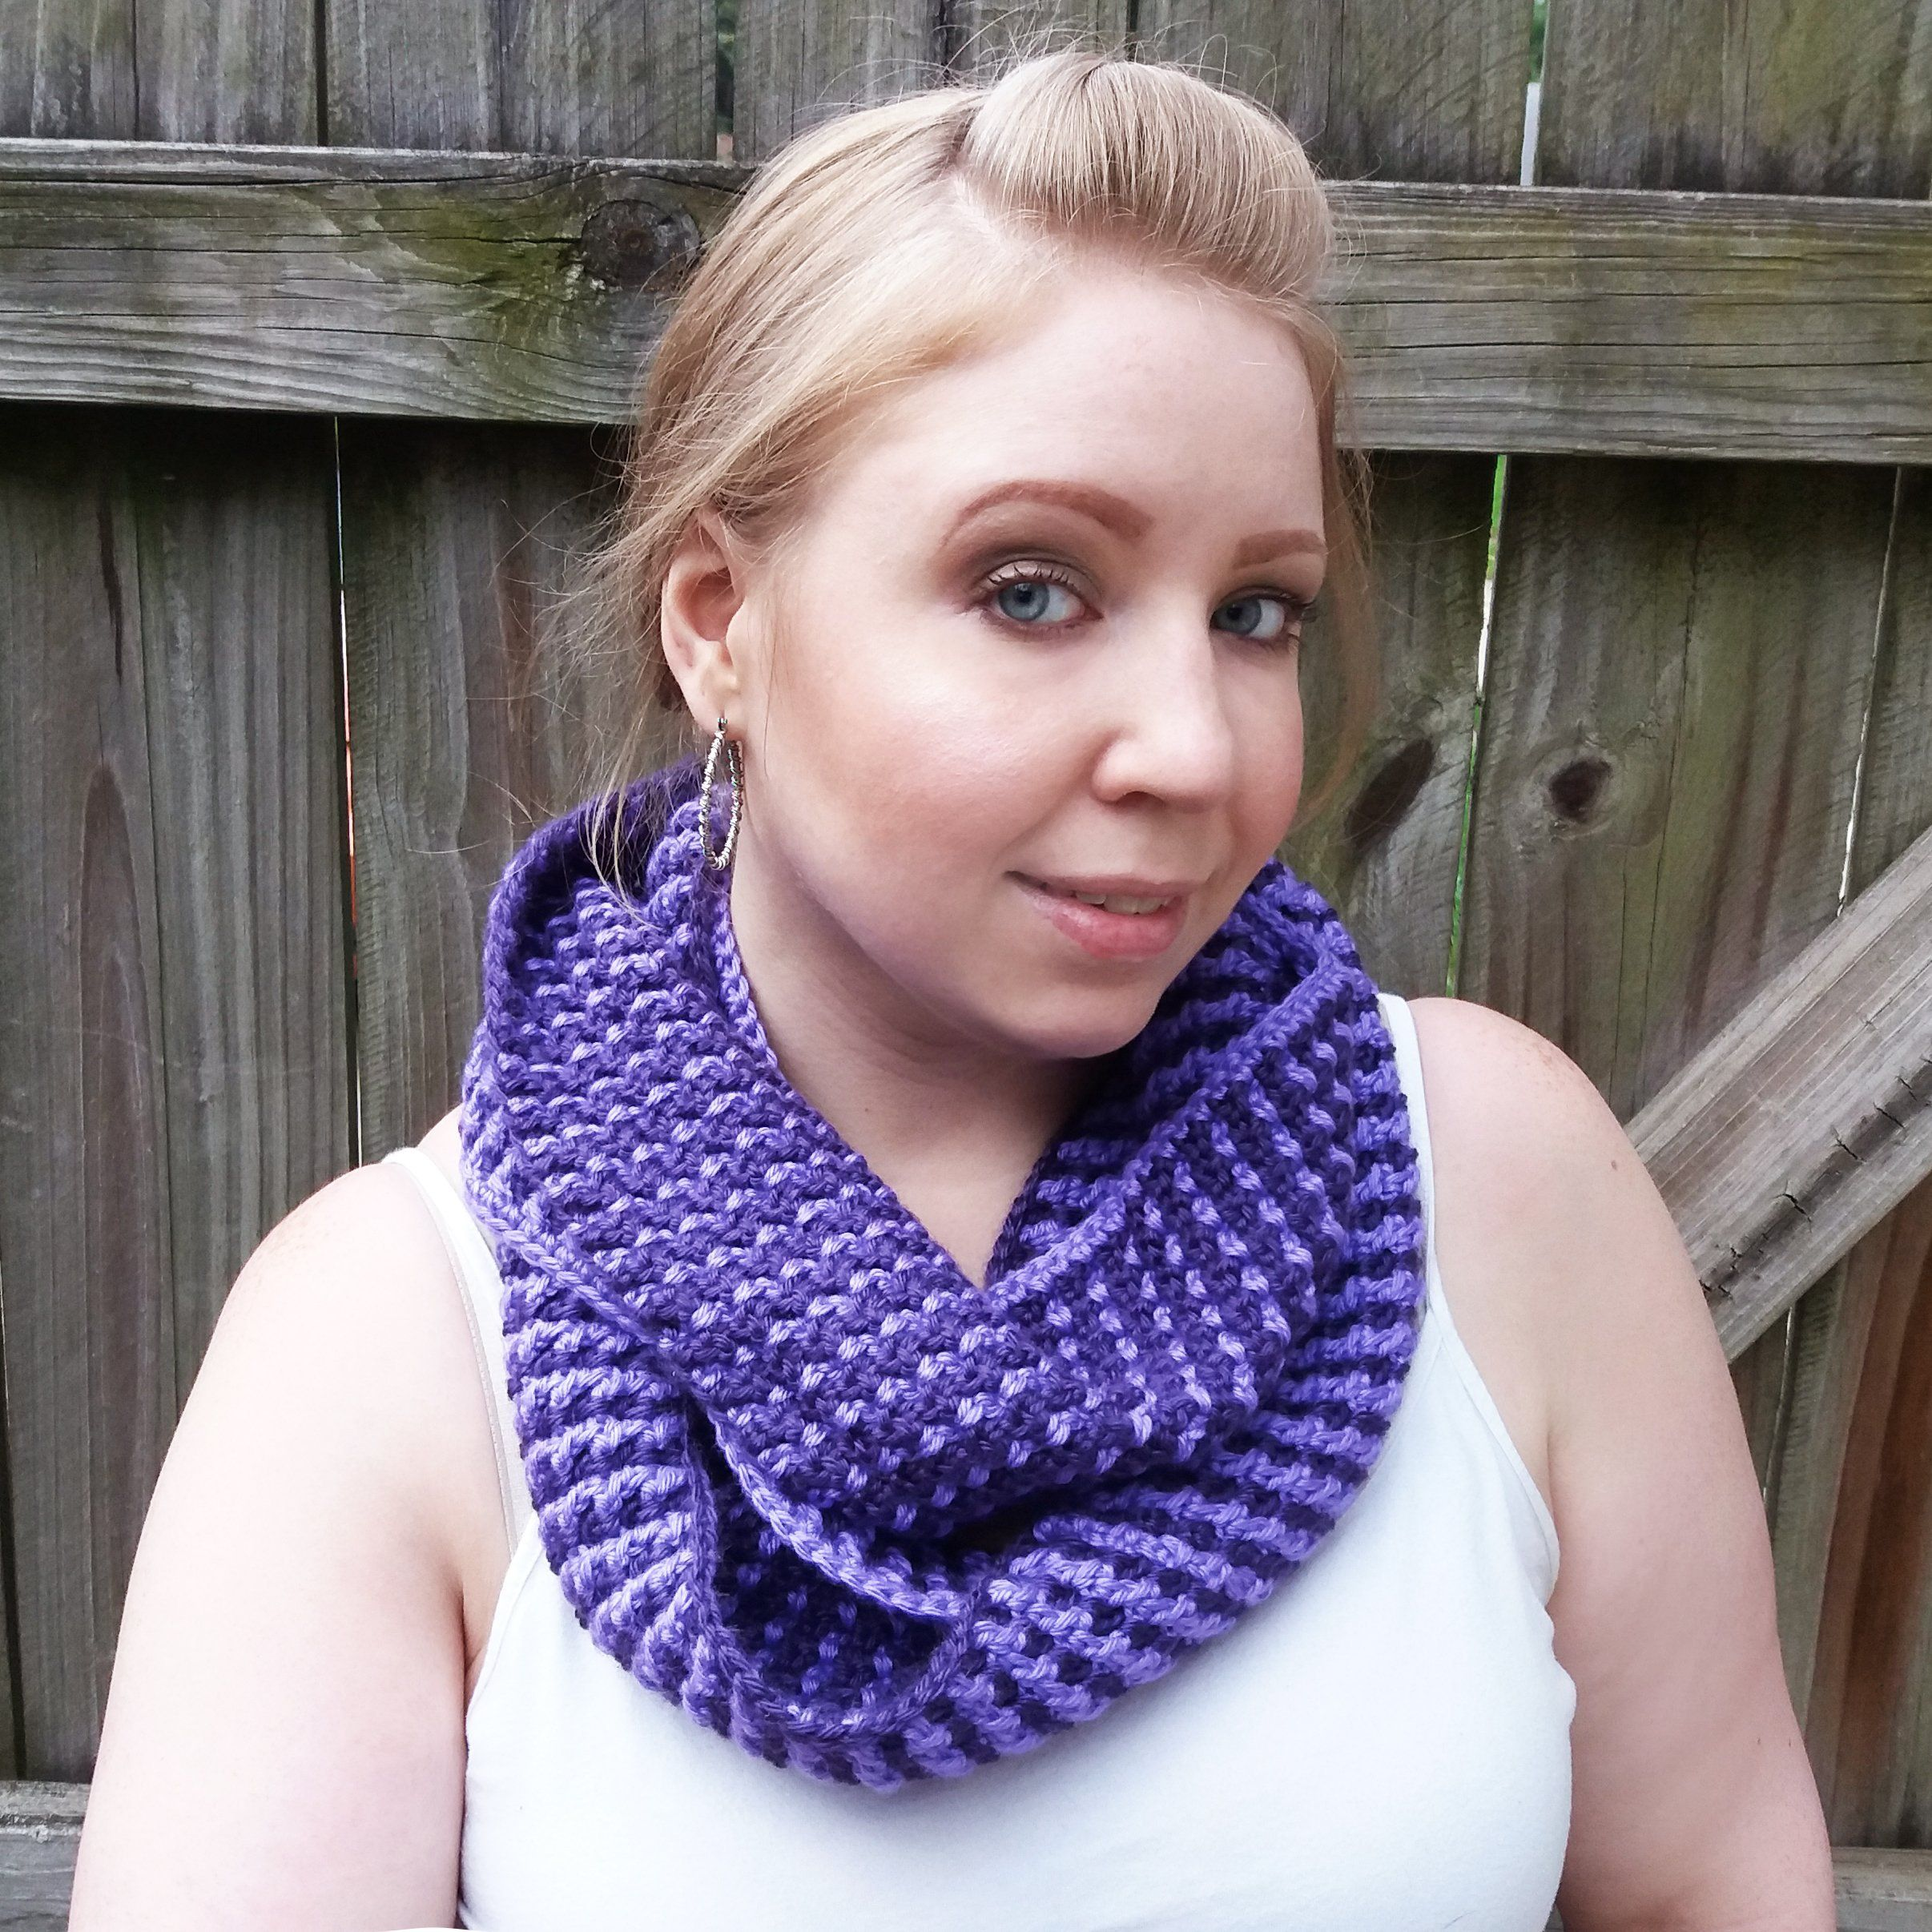 Purple Crochet Infinity Scarf. Add a unique statement piece to your cool weather ensemble with this double-sided crochet infinity scarf. Made with silky acrylic yarn in light and dark purple, each side has a different look that combines beautifully with the other when doubled up. Care Instructions: Hand wash in cool water and lay flat to air dry.